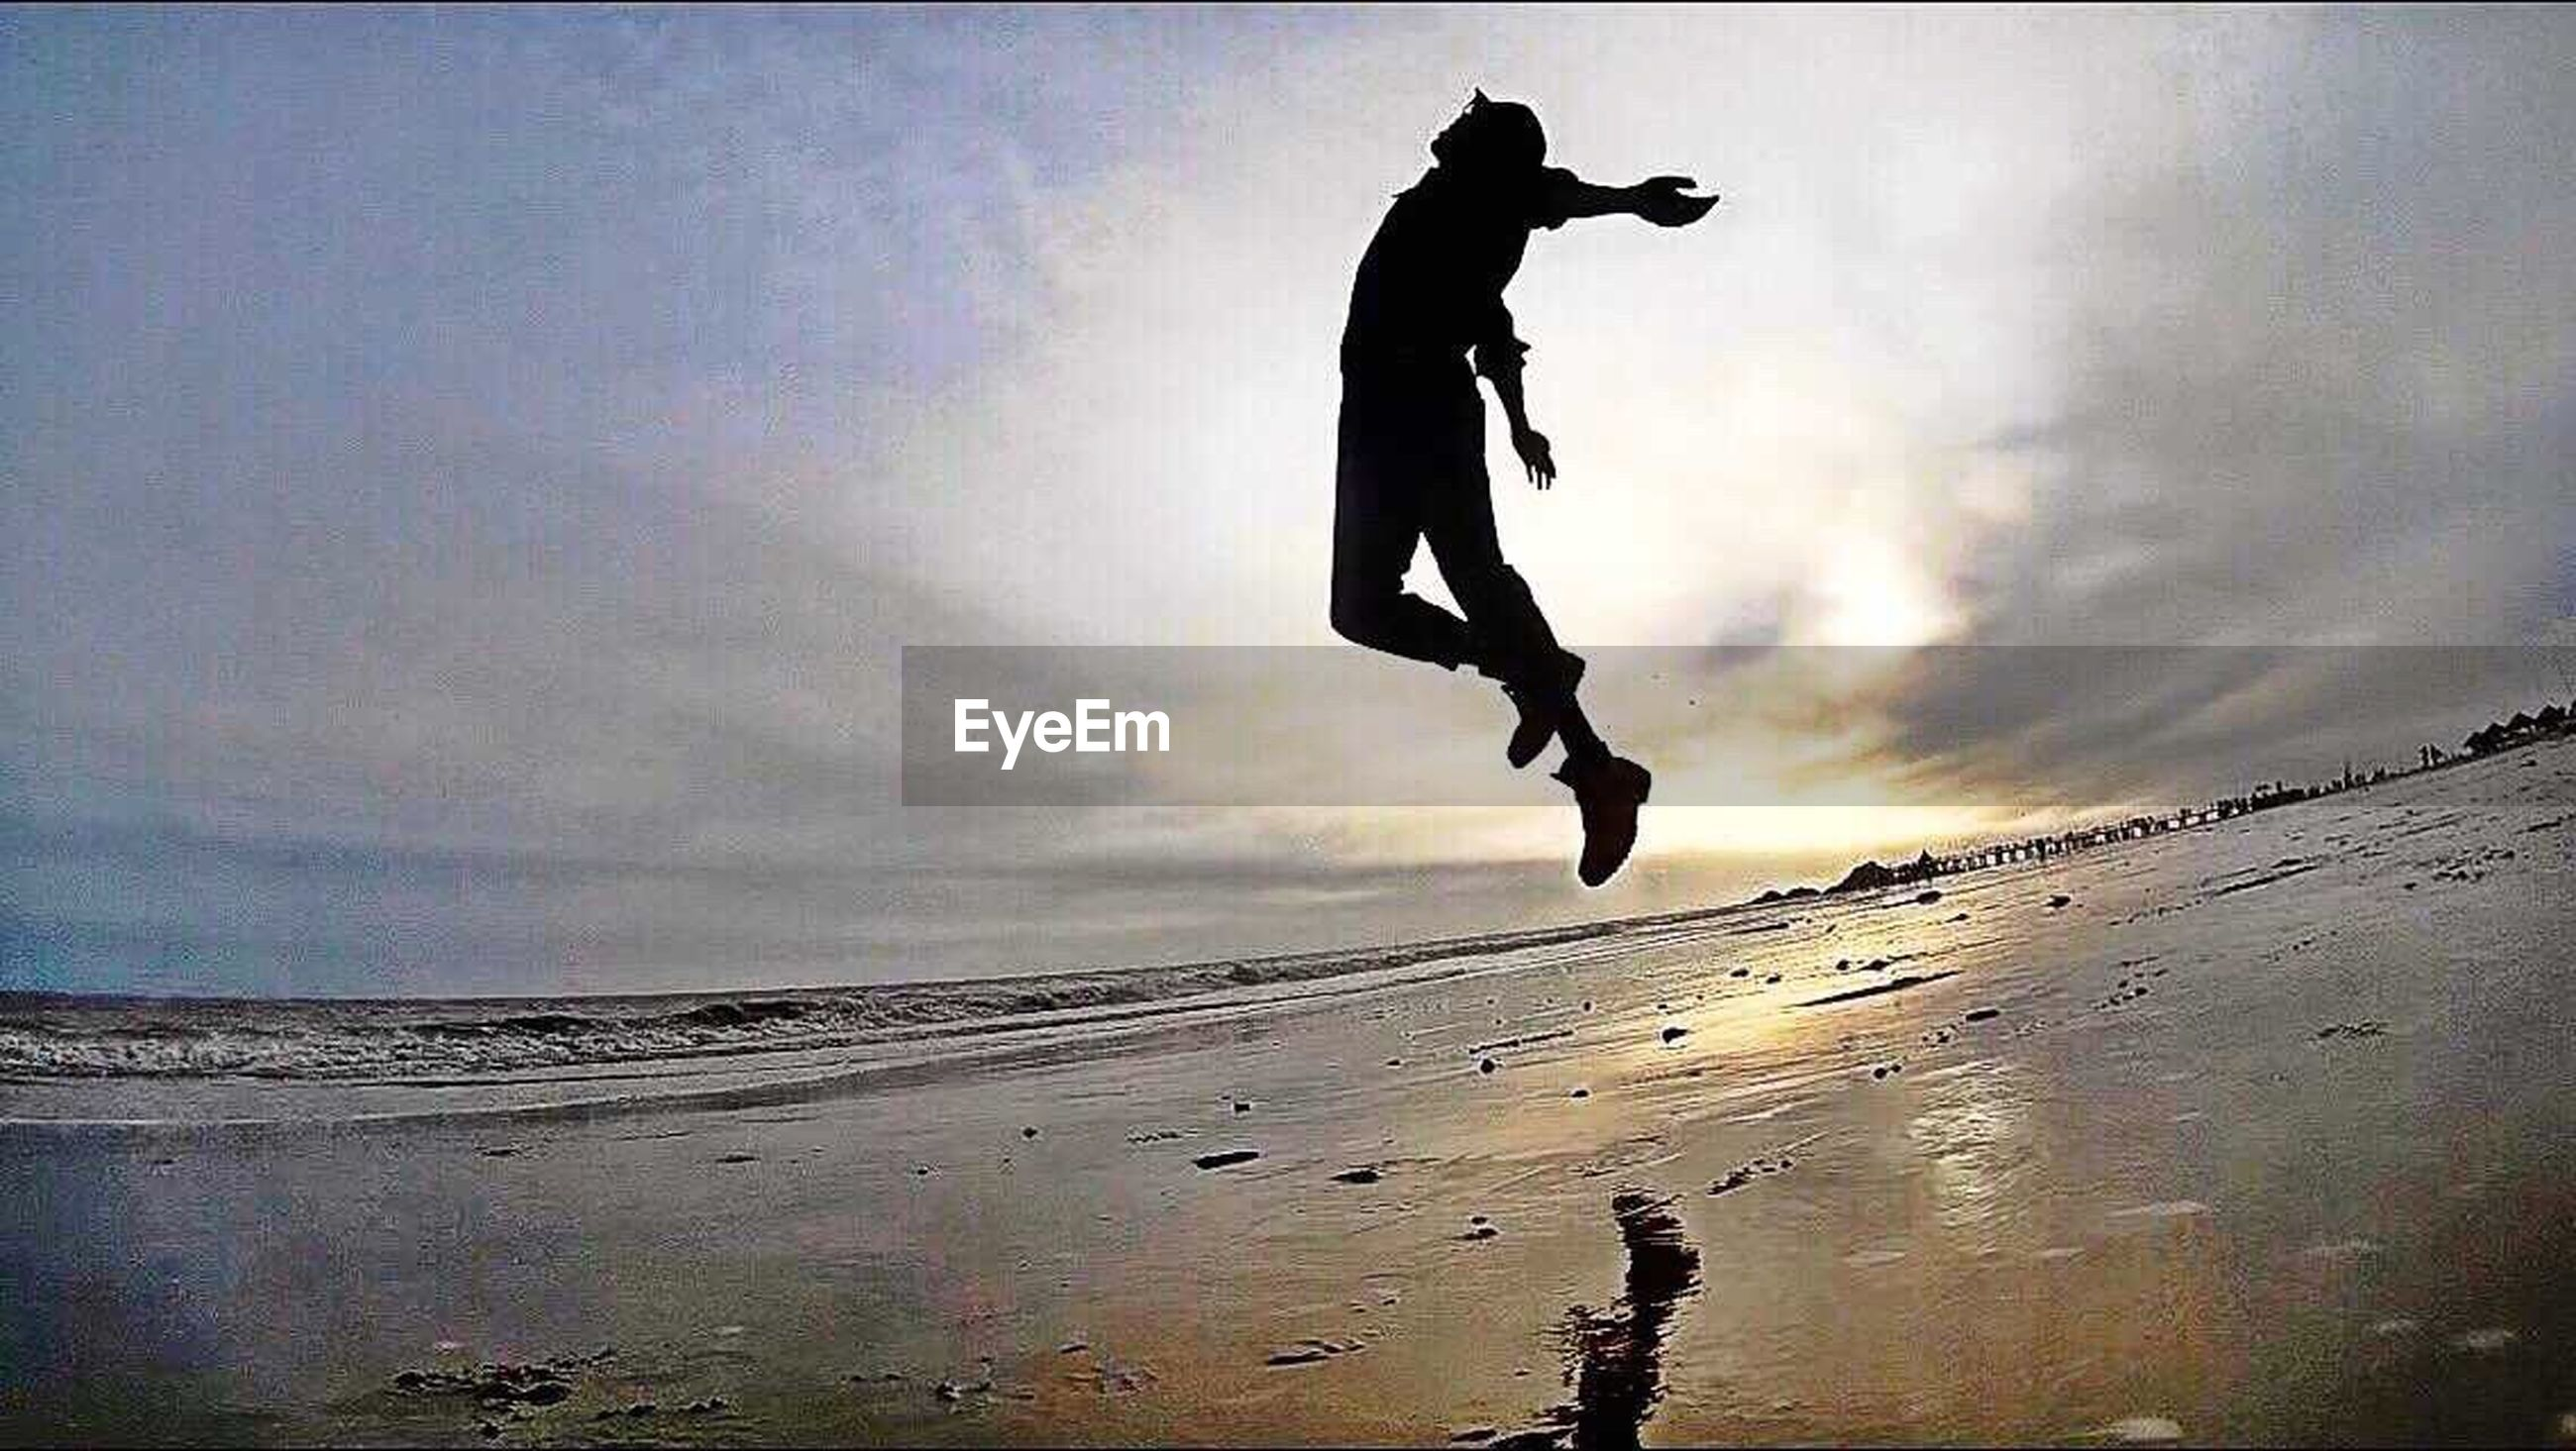 full length, sky, cloud - sky, leisure activity, jumping, lifestyles, mid-air, arms outstretched, balance, men, arms raised, cloud, cloudy, silhouette, low angle view, sea, motion, vitality